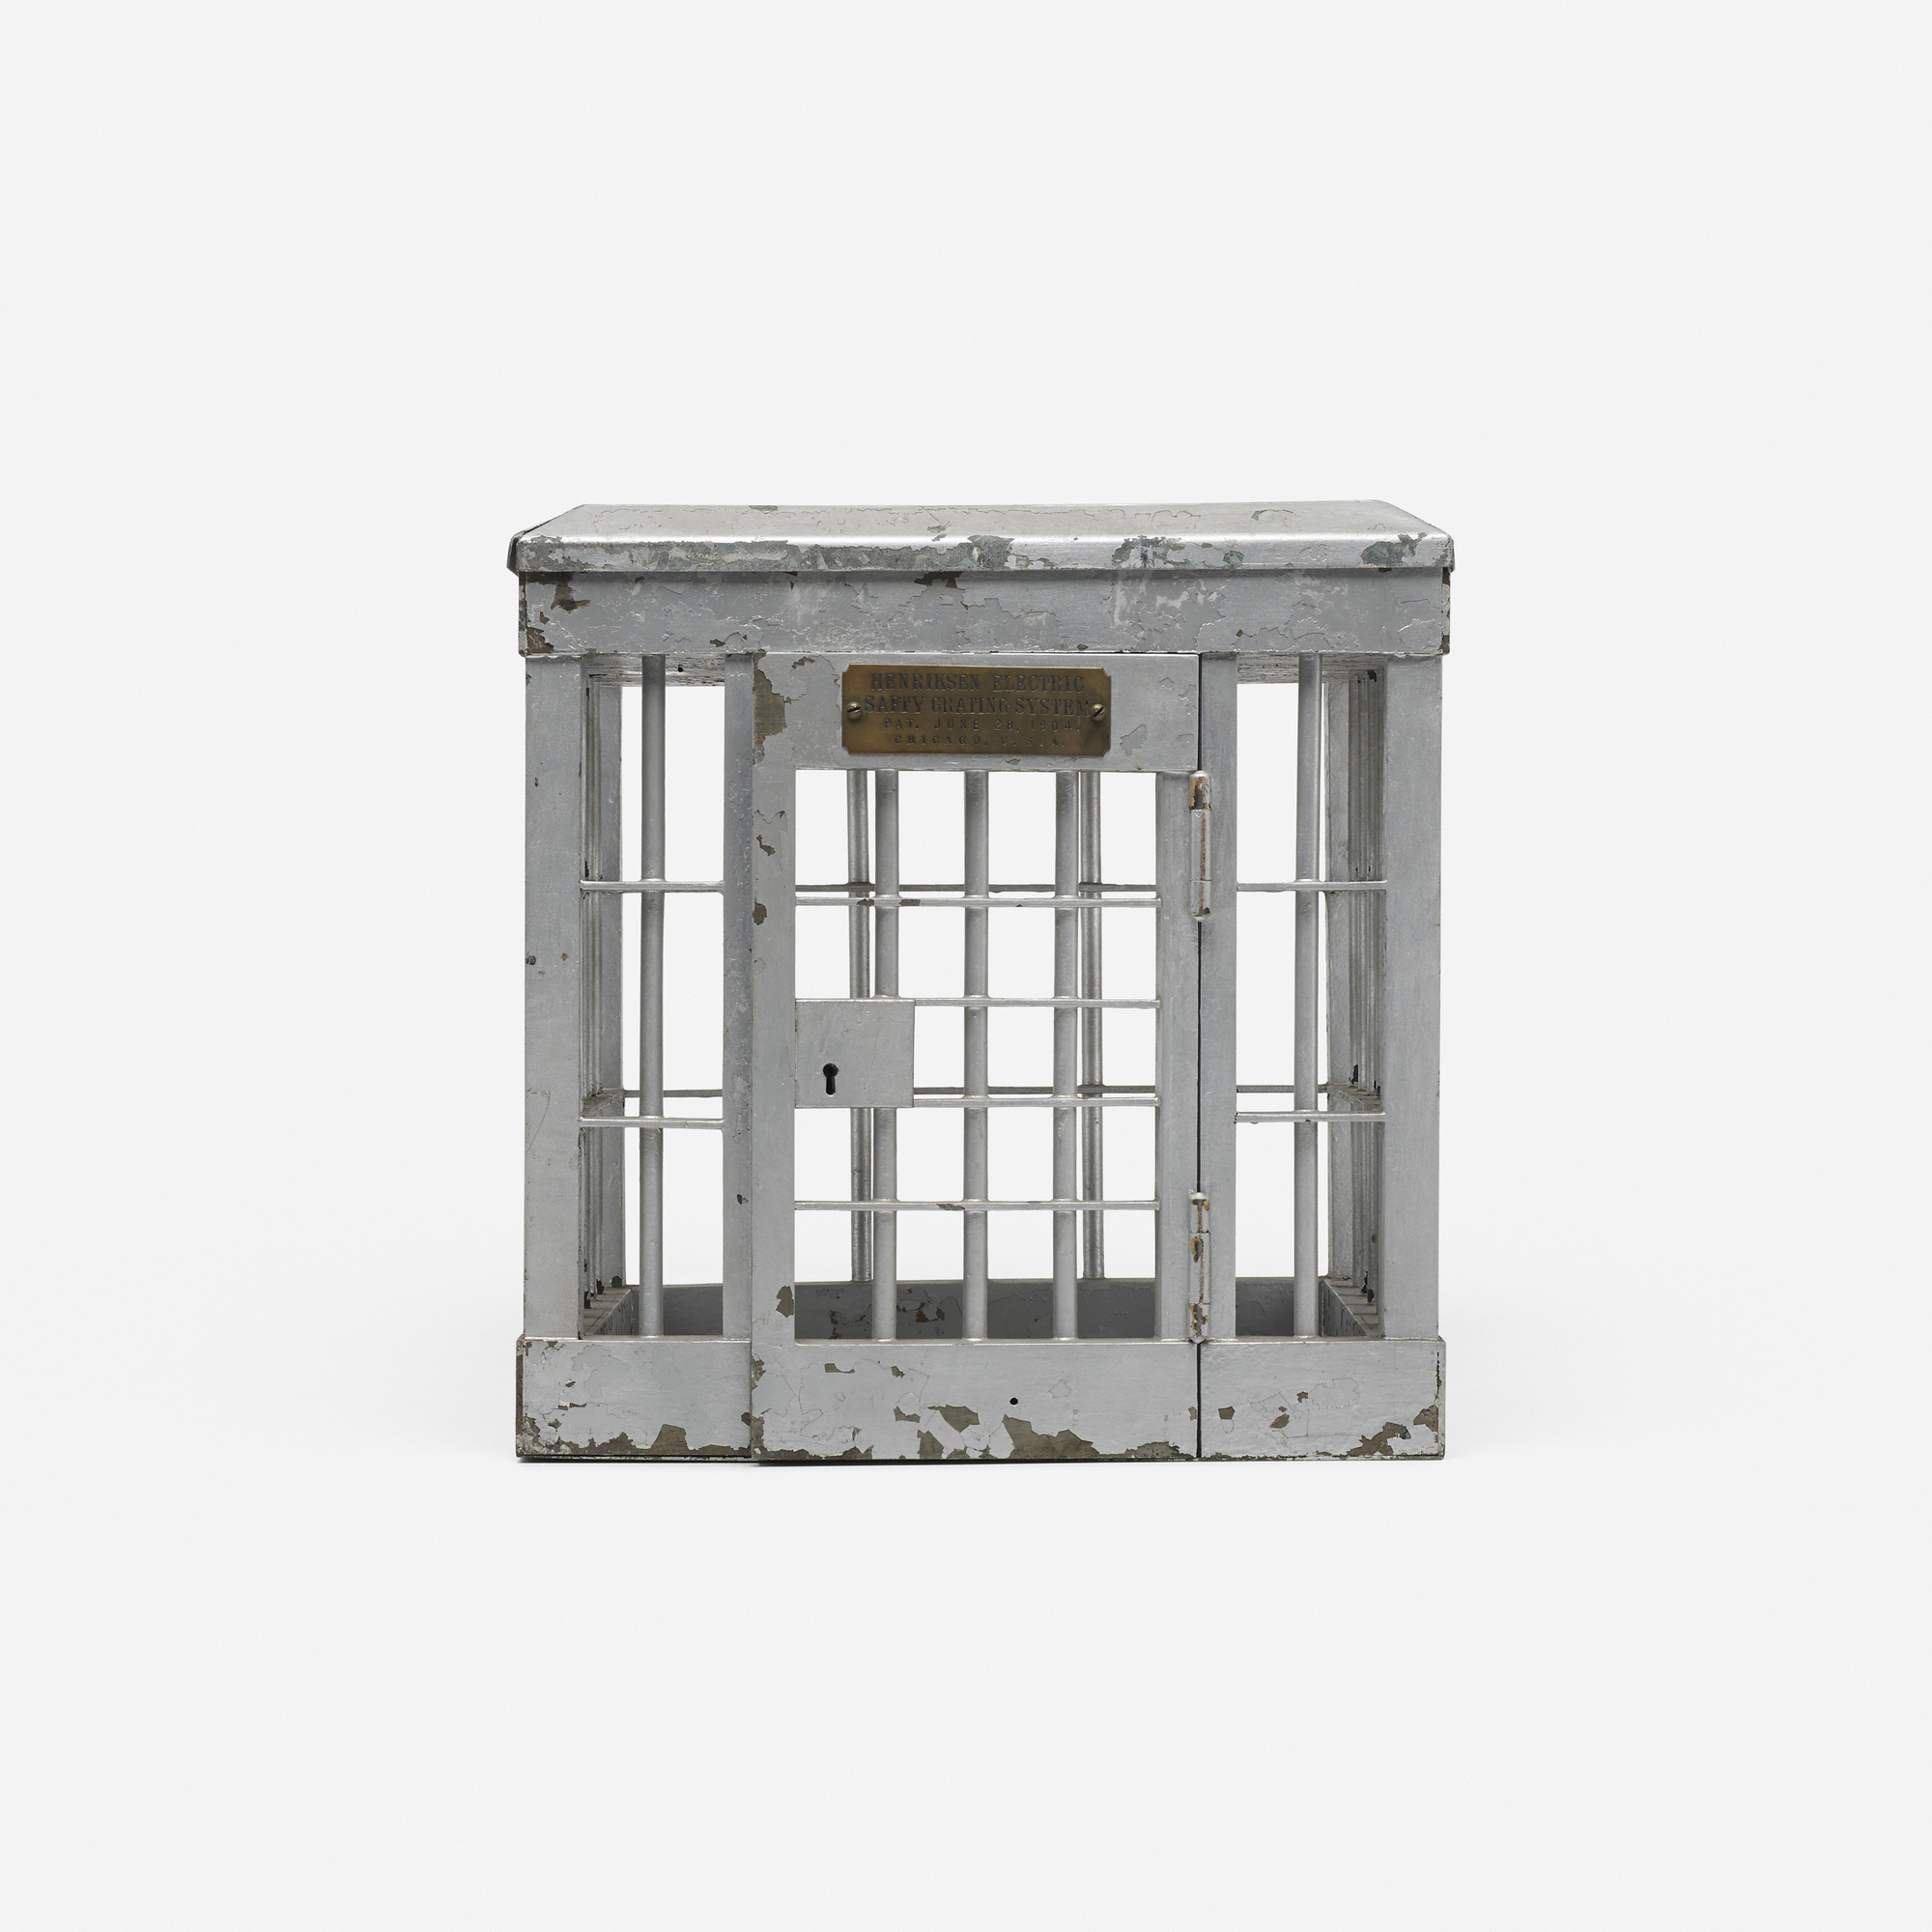 761: Turn of the Century / jail cell patent model (1 of 1)